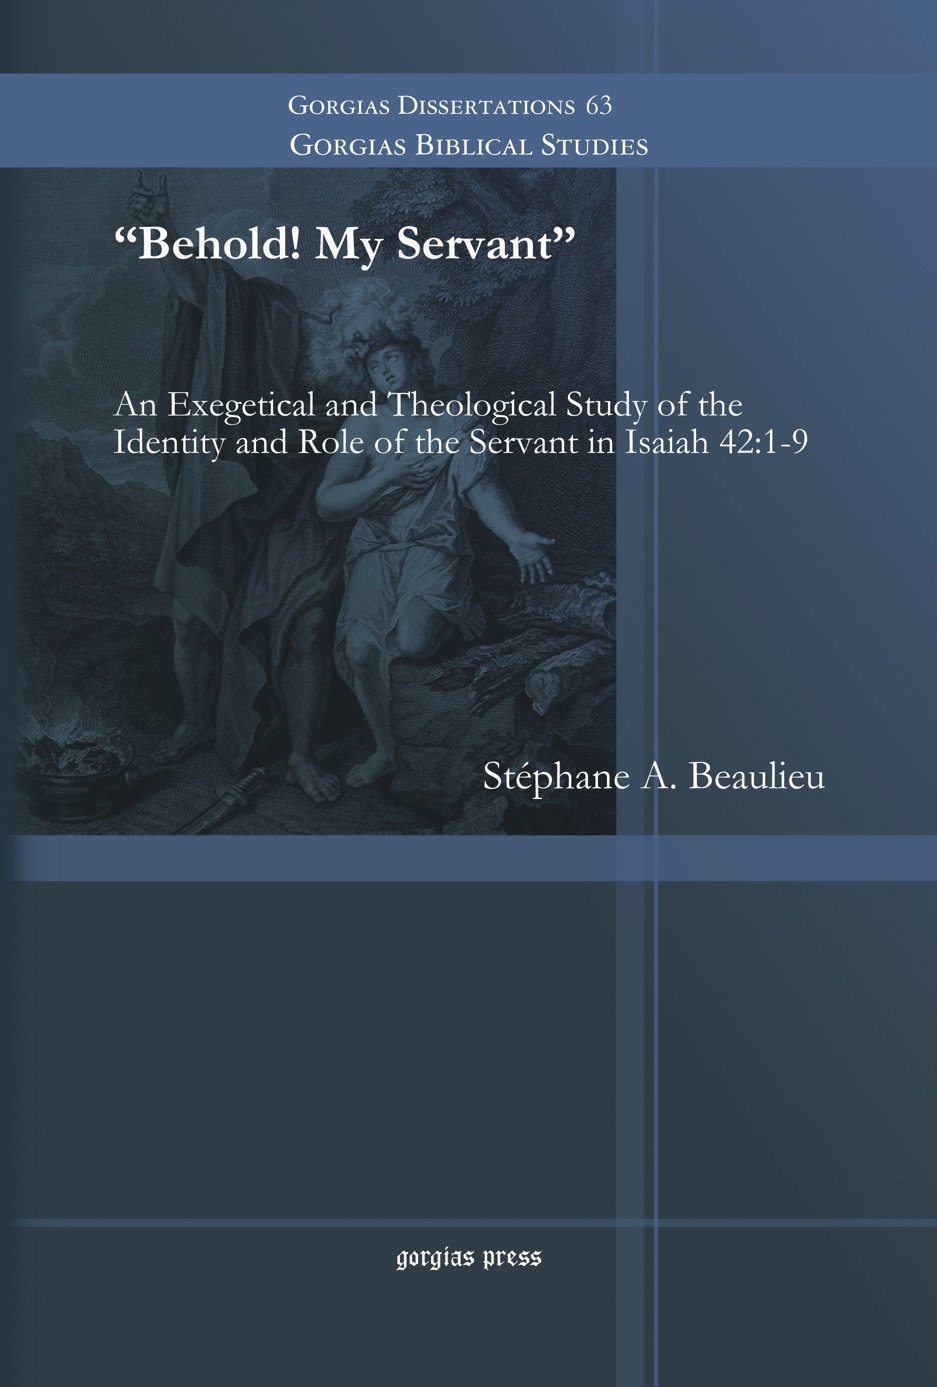 Download Behold! My Servant: An Exegetical and Theological Study of the Identity and Role of the Servant in Isaiah 42:1-9 ebook